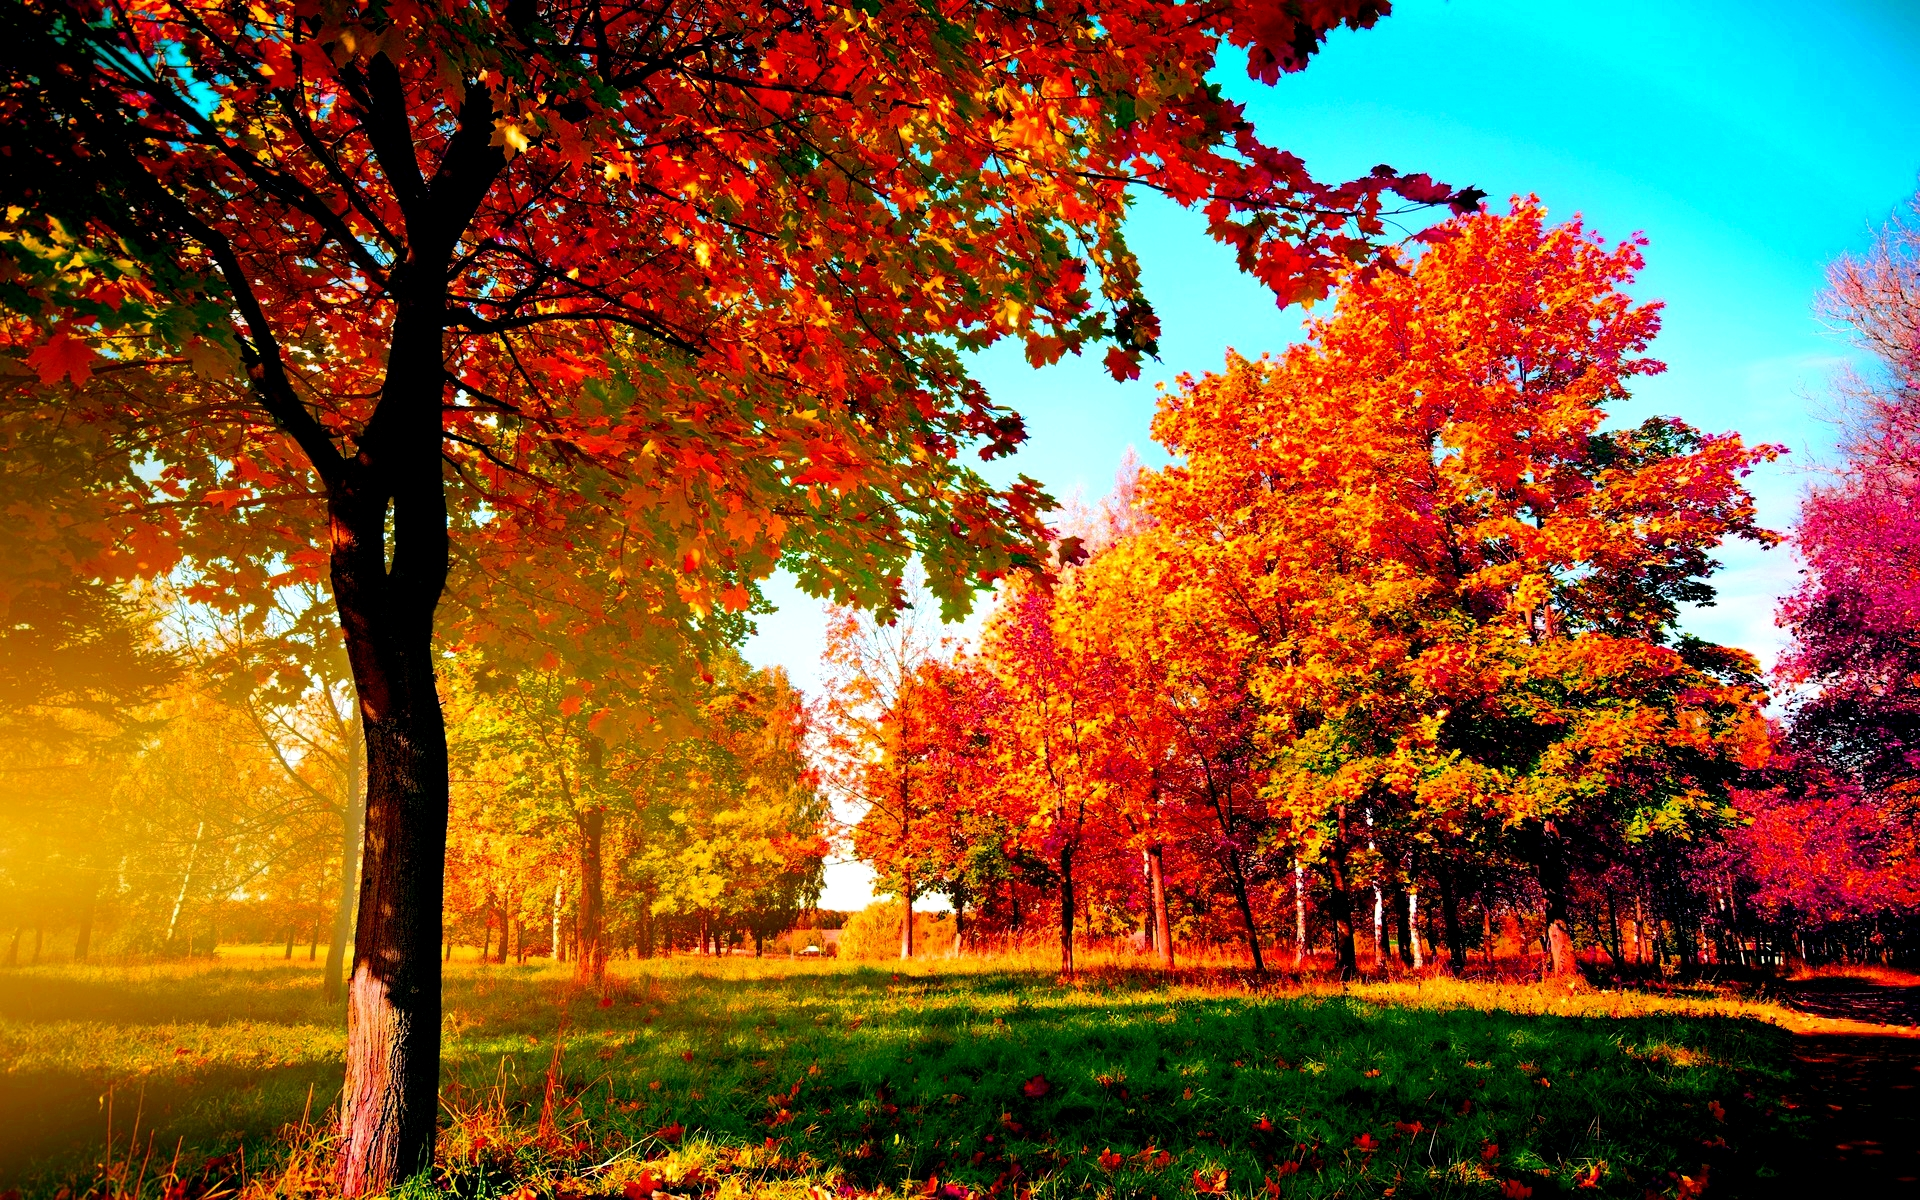 Free Download Autumn Trees Wallpapers 1920x1200 For Your Desktop Mobile Tablet Explore 73 Autumn Tree Wallpaper Autumn Leaves Wallpaper Fall Tree Wallpaper Fall Trees Wallpaper Desktop